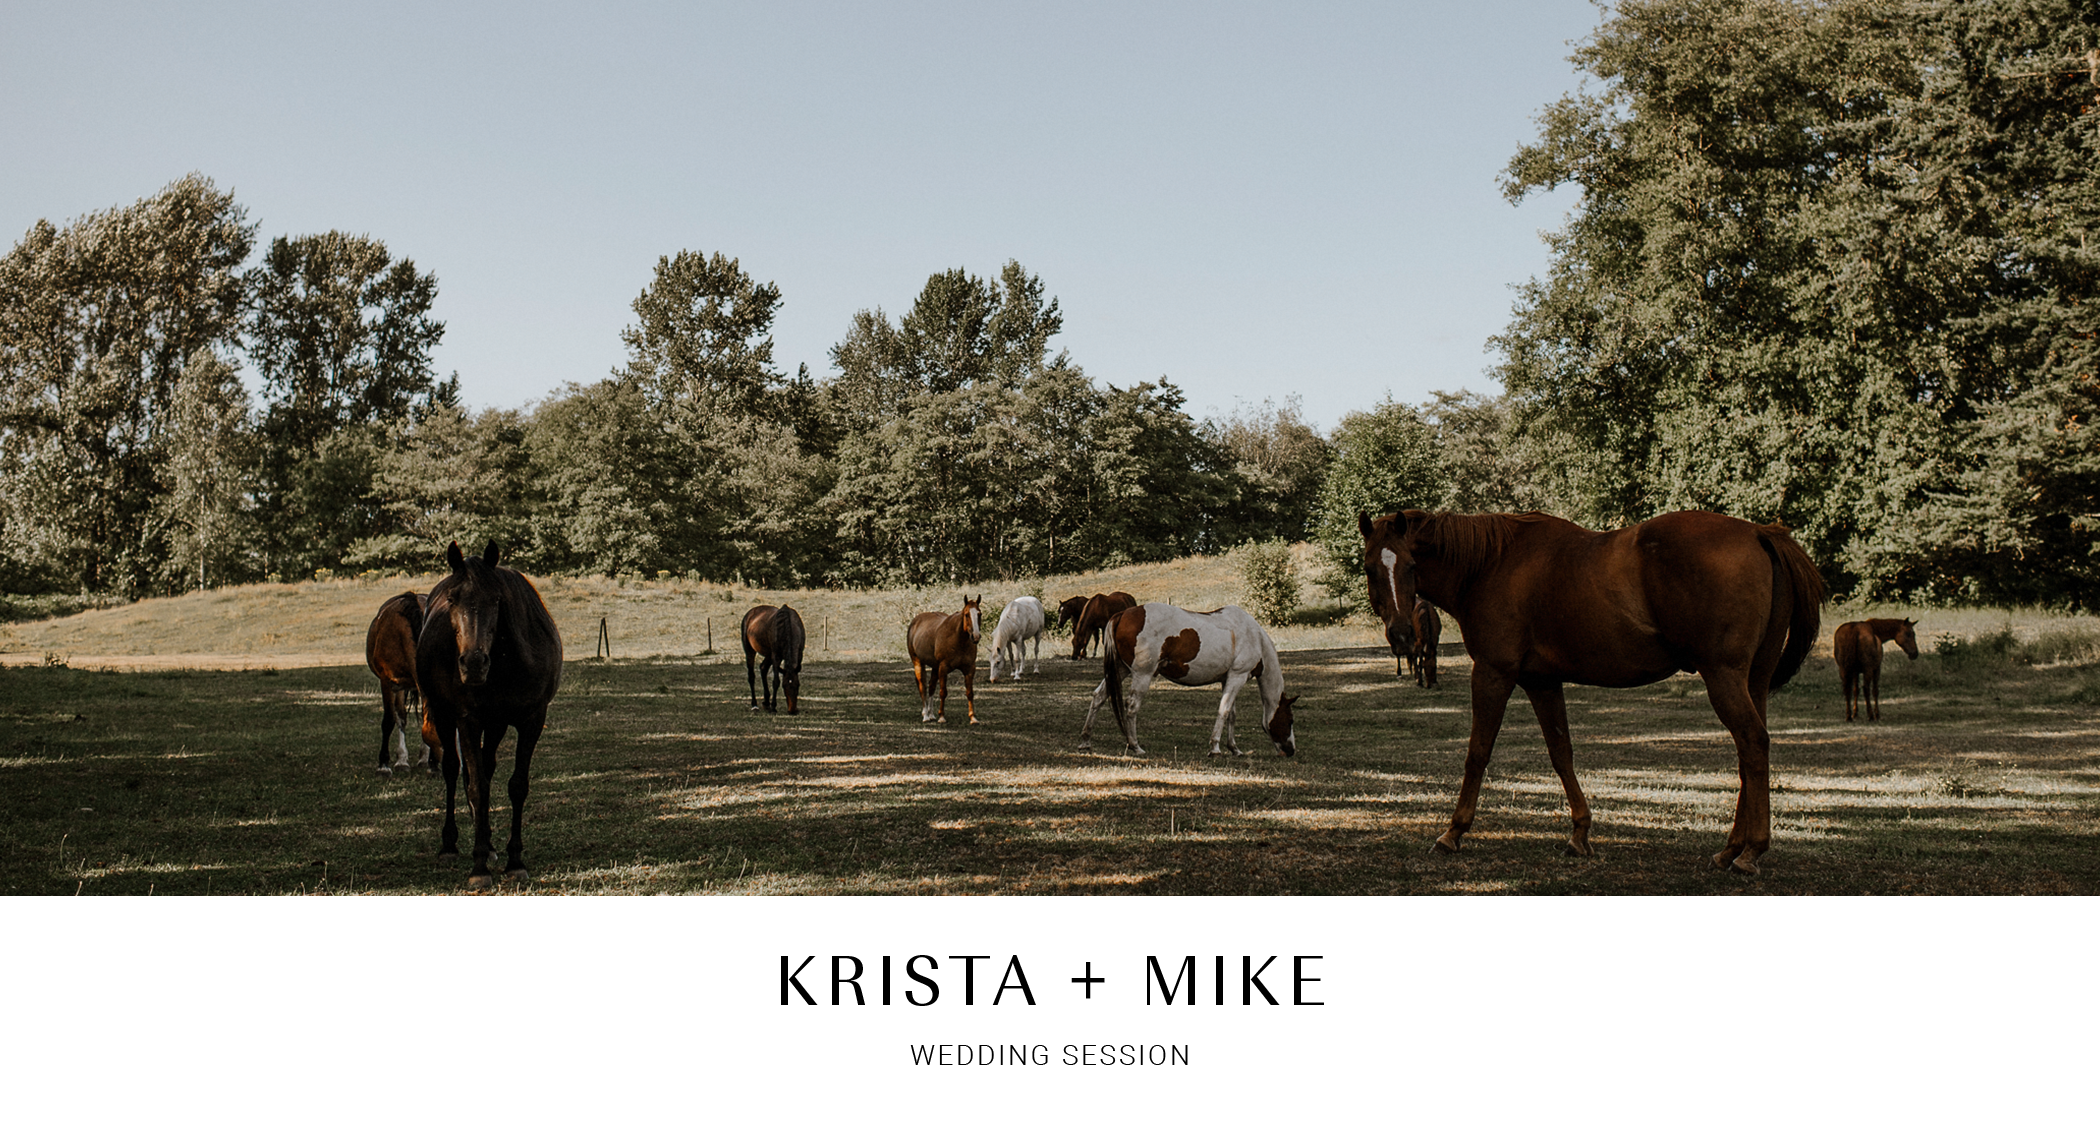 HEADER001-kaoverii-silva-KM-prewedding-vancouver-photography-webbs-holiday-acres-horse-ranch-blog.png